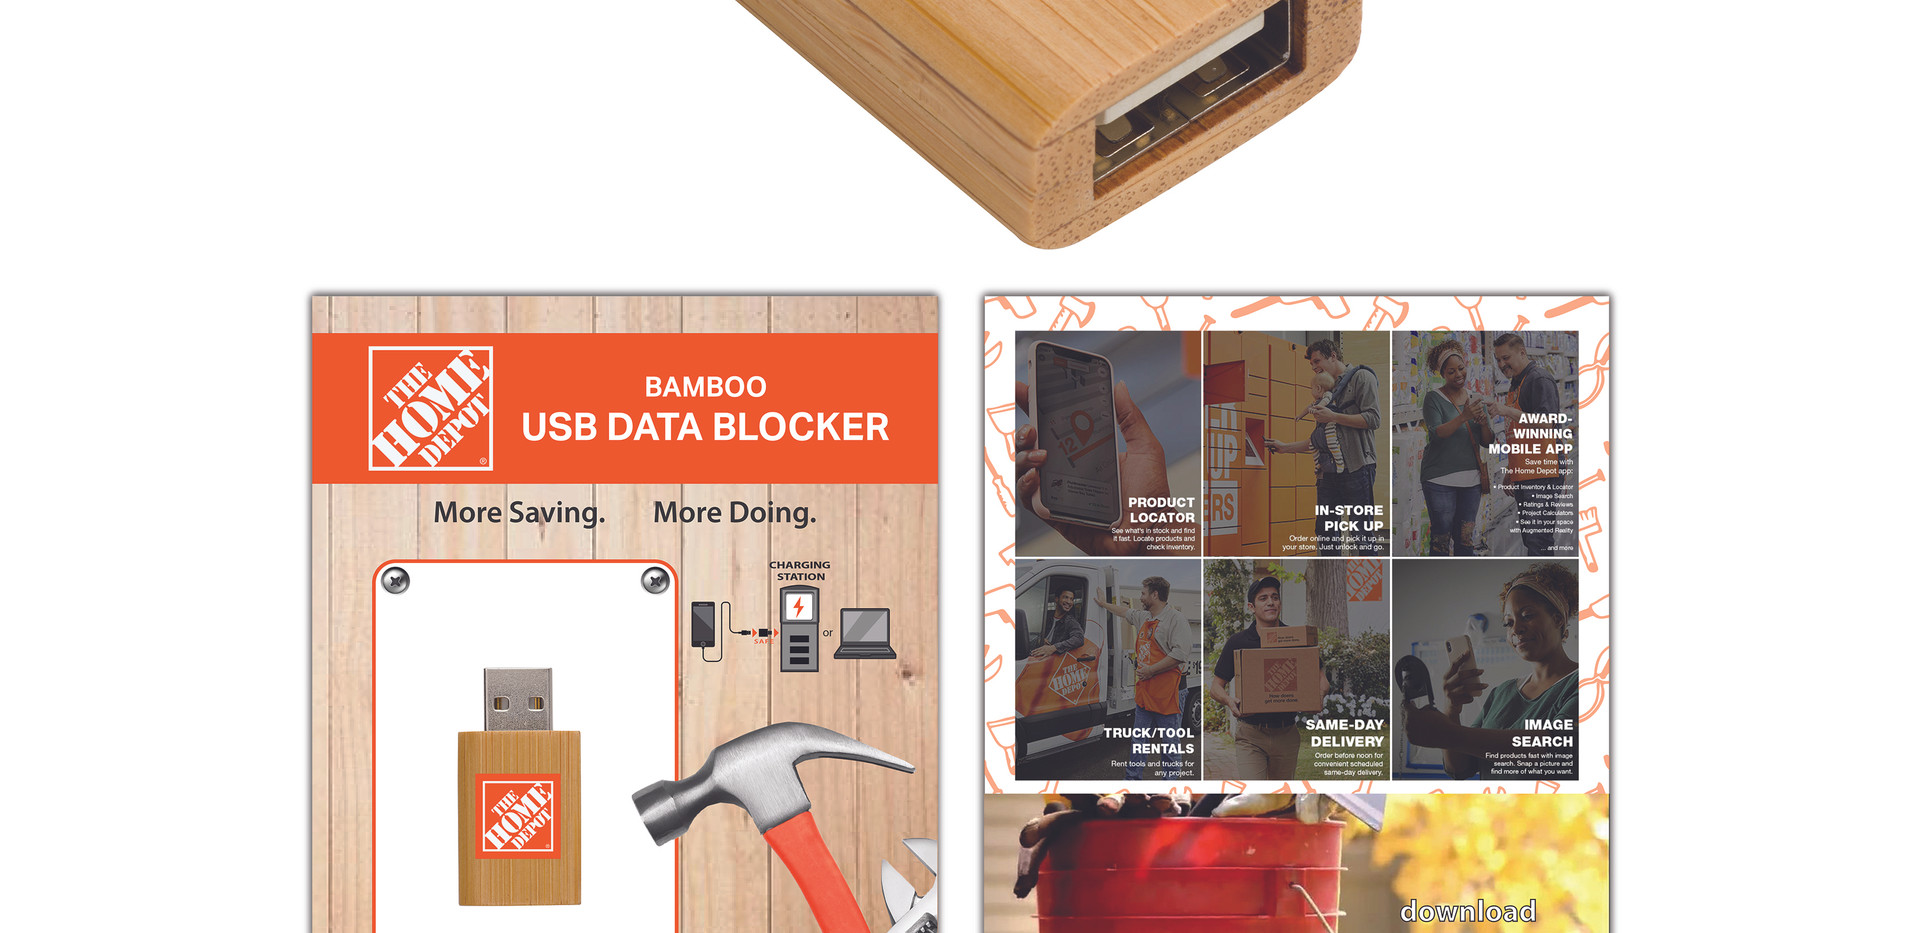 Home Depot USDB Bamboo Custom Card.jpg